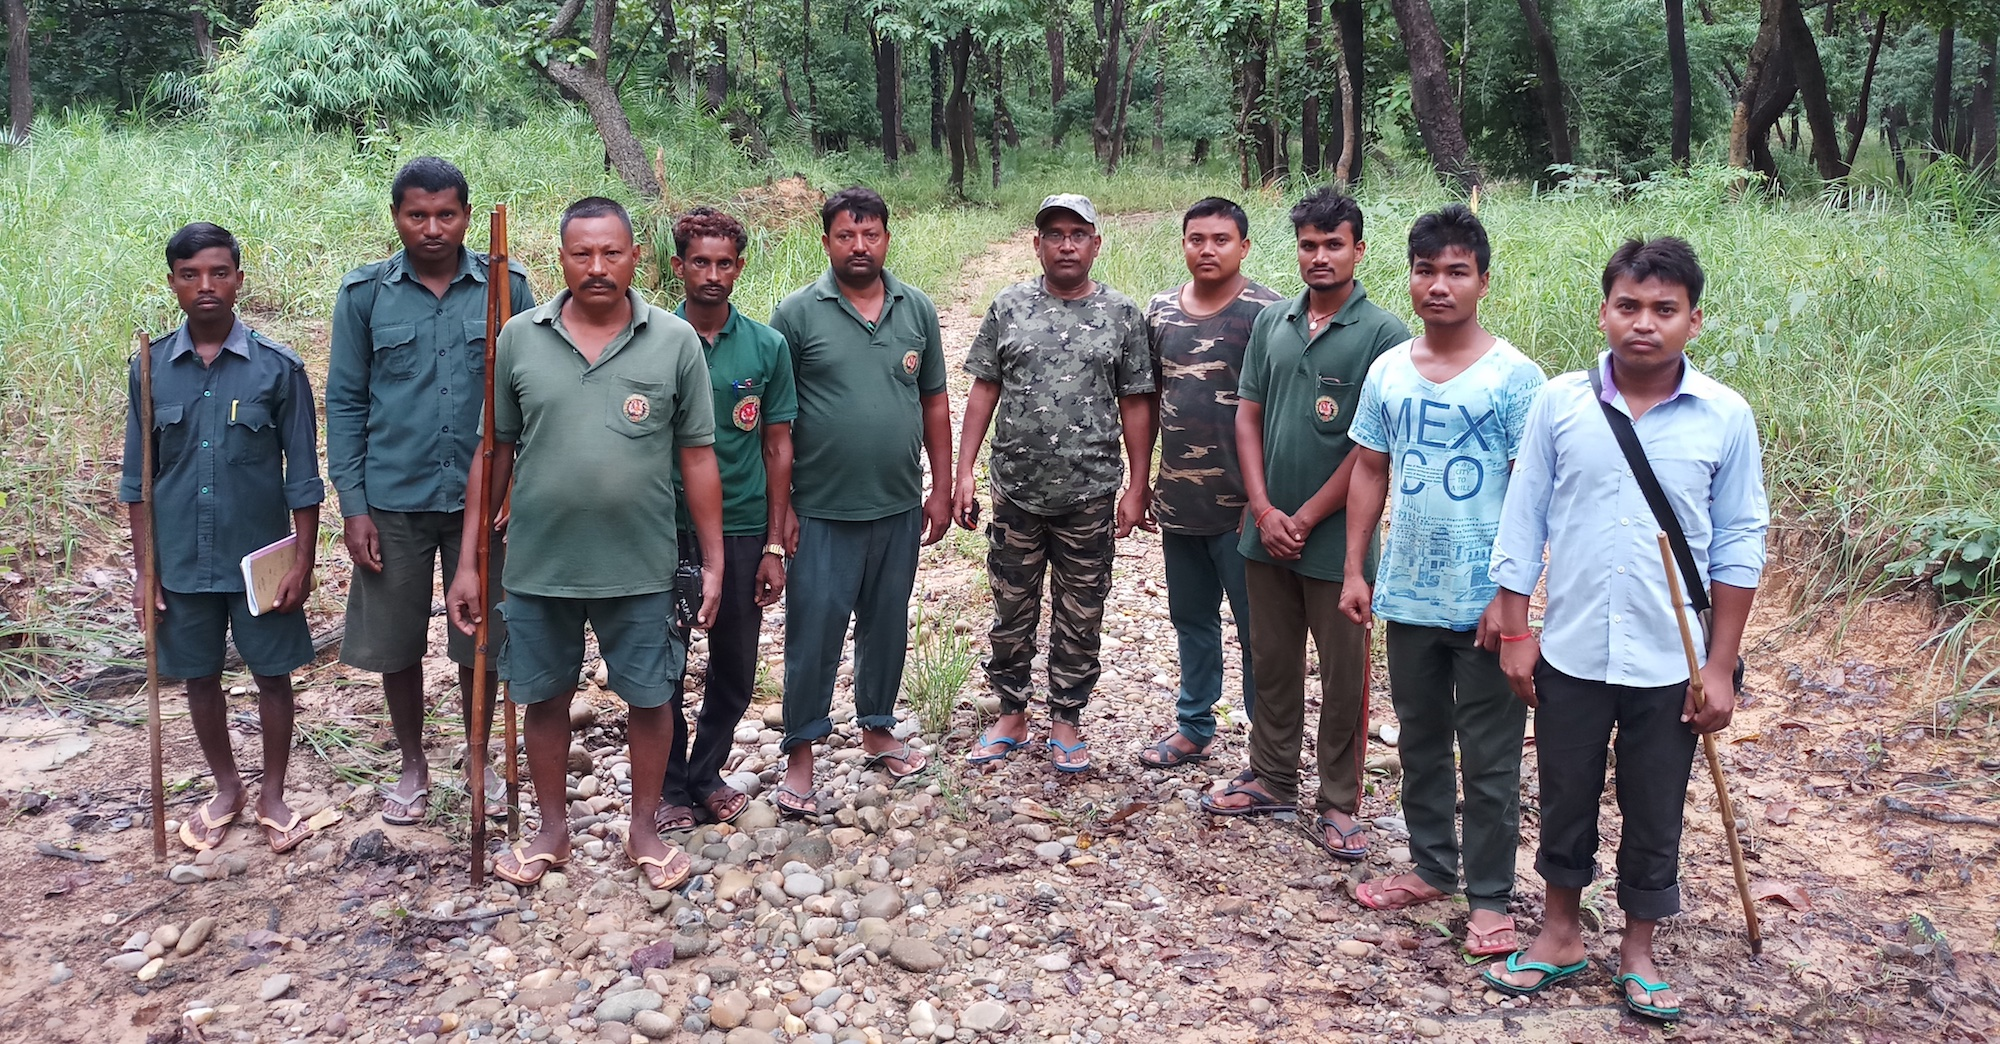 tiger trackers team photo by gurvinder singh